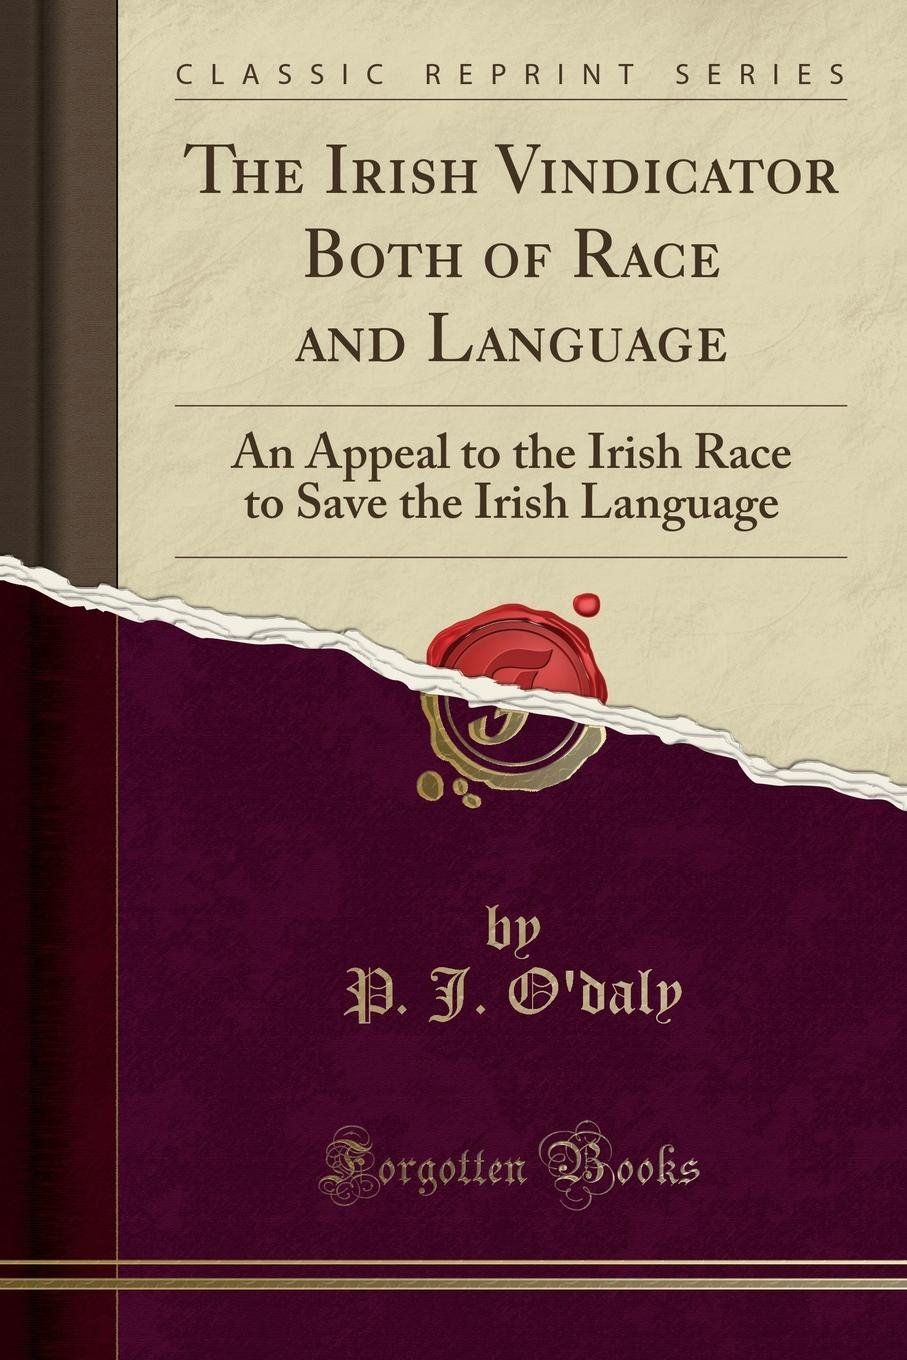 Download The Irish Vindicator Both of Race and Language: An Appeal to the Irish Race to Save the Irish Language (Classic Reprint) ebook